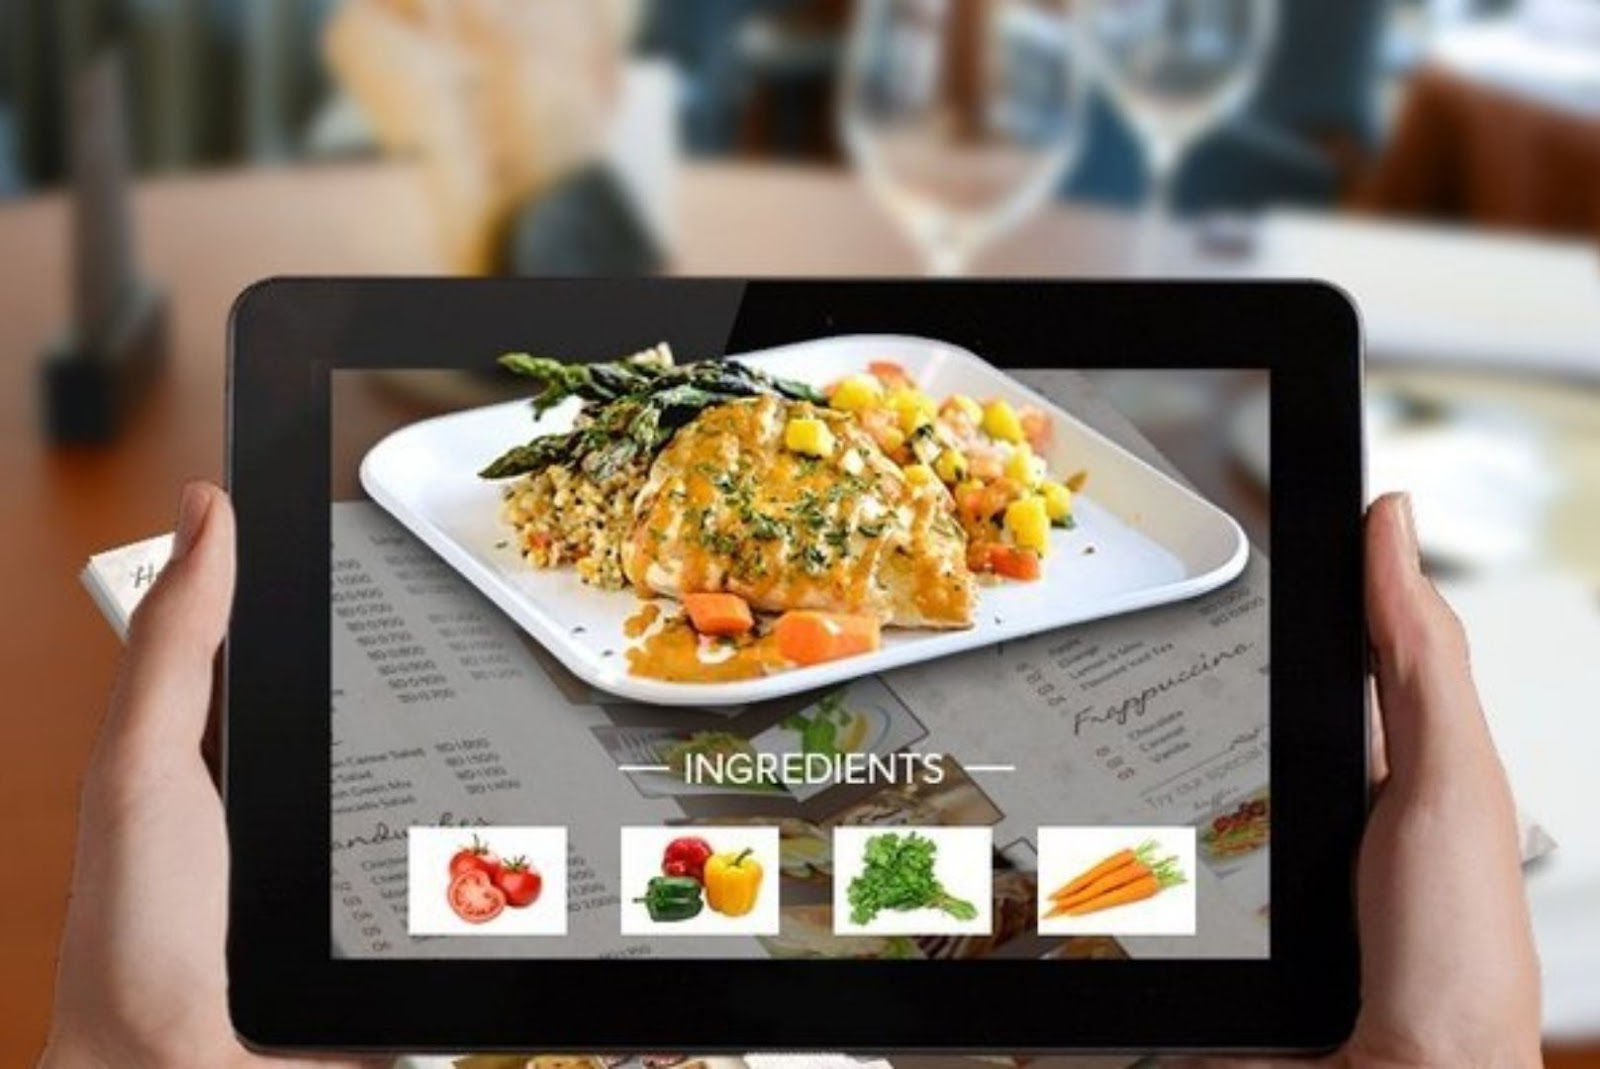 Augmented Reality based food app ideas